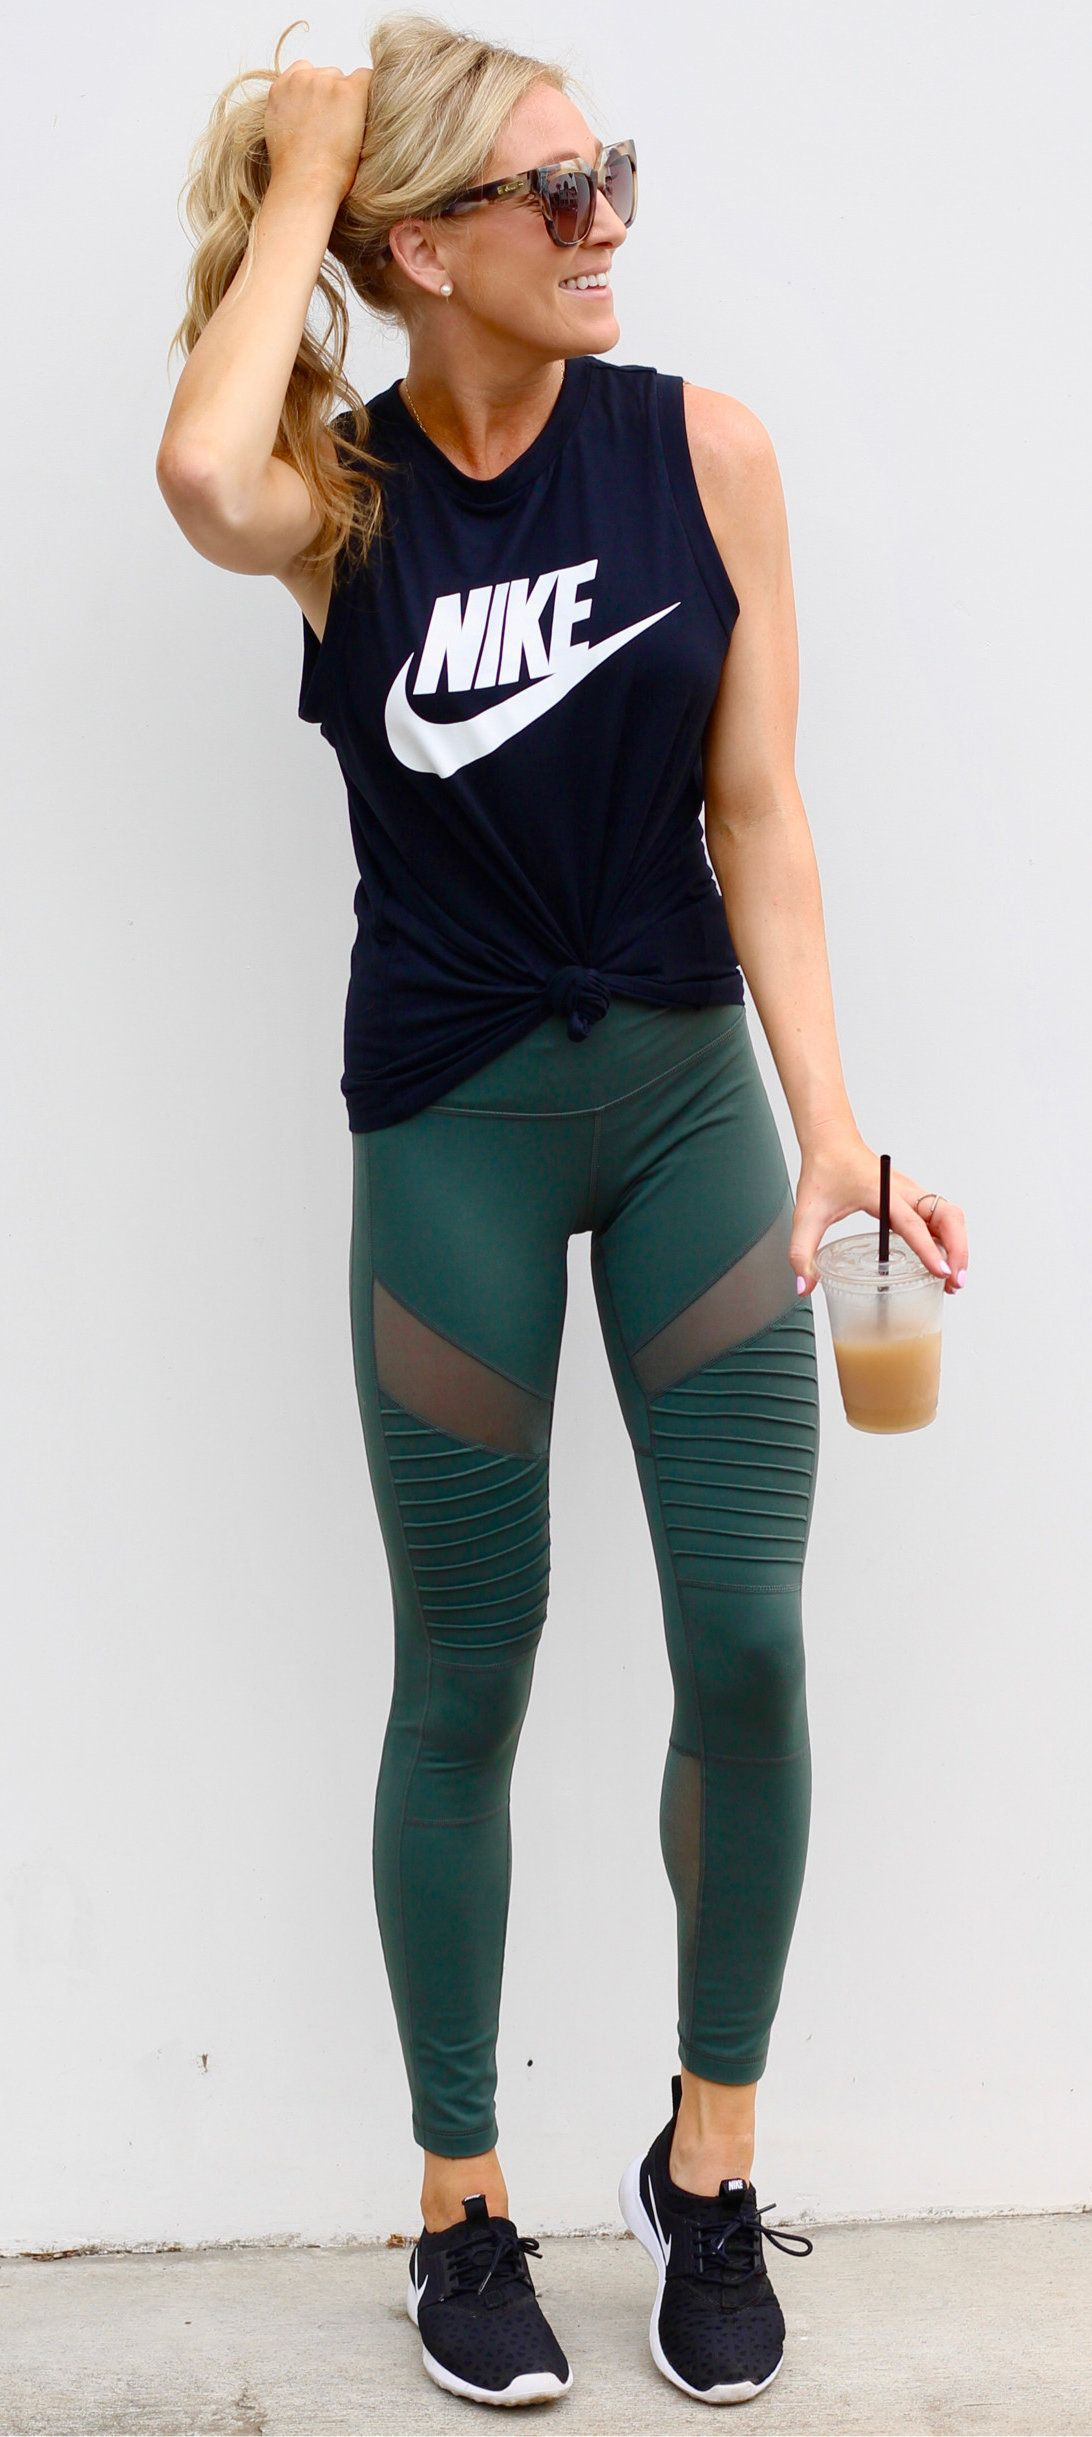 82759919e452f #fall #outfits women's black crew-neck Nike printed sleeveless shirt, green  tights, and pair of black-and-white Nike Roshe Run sneakers outfit